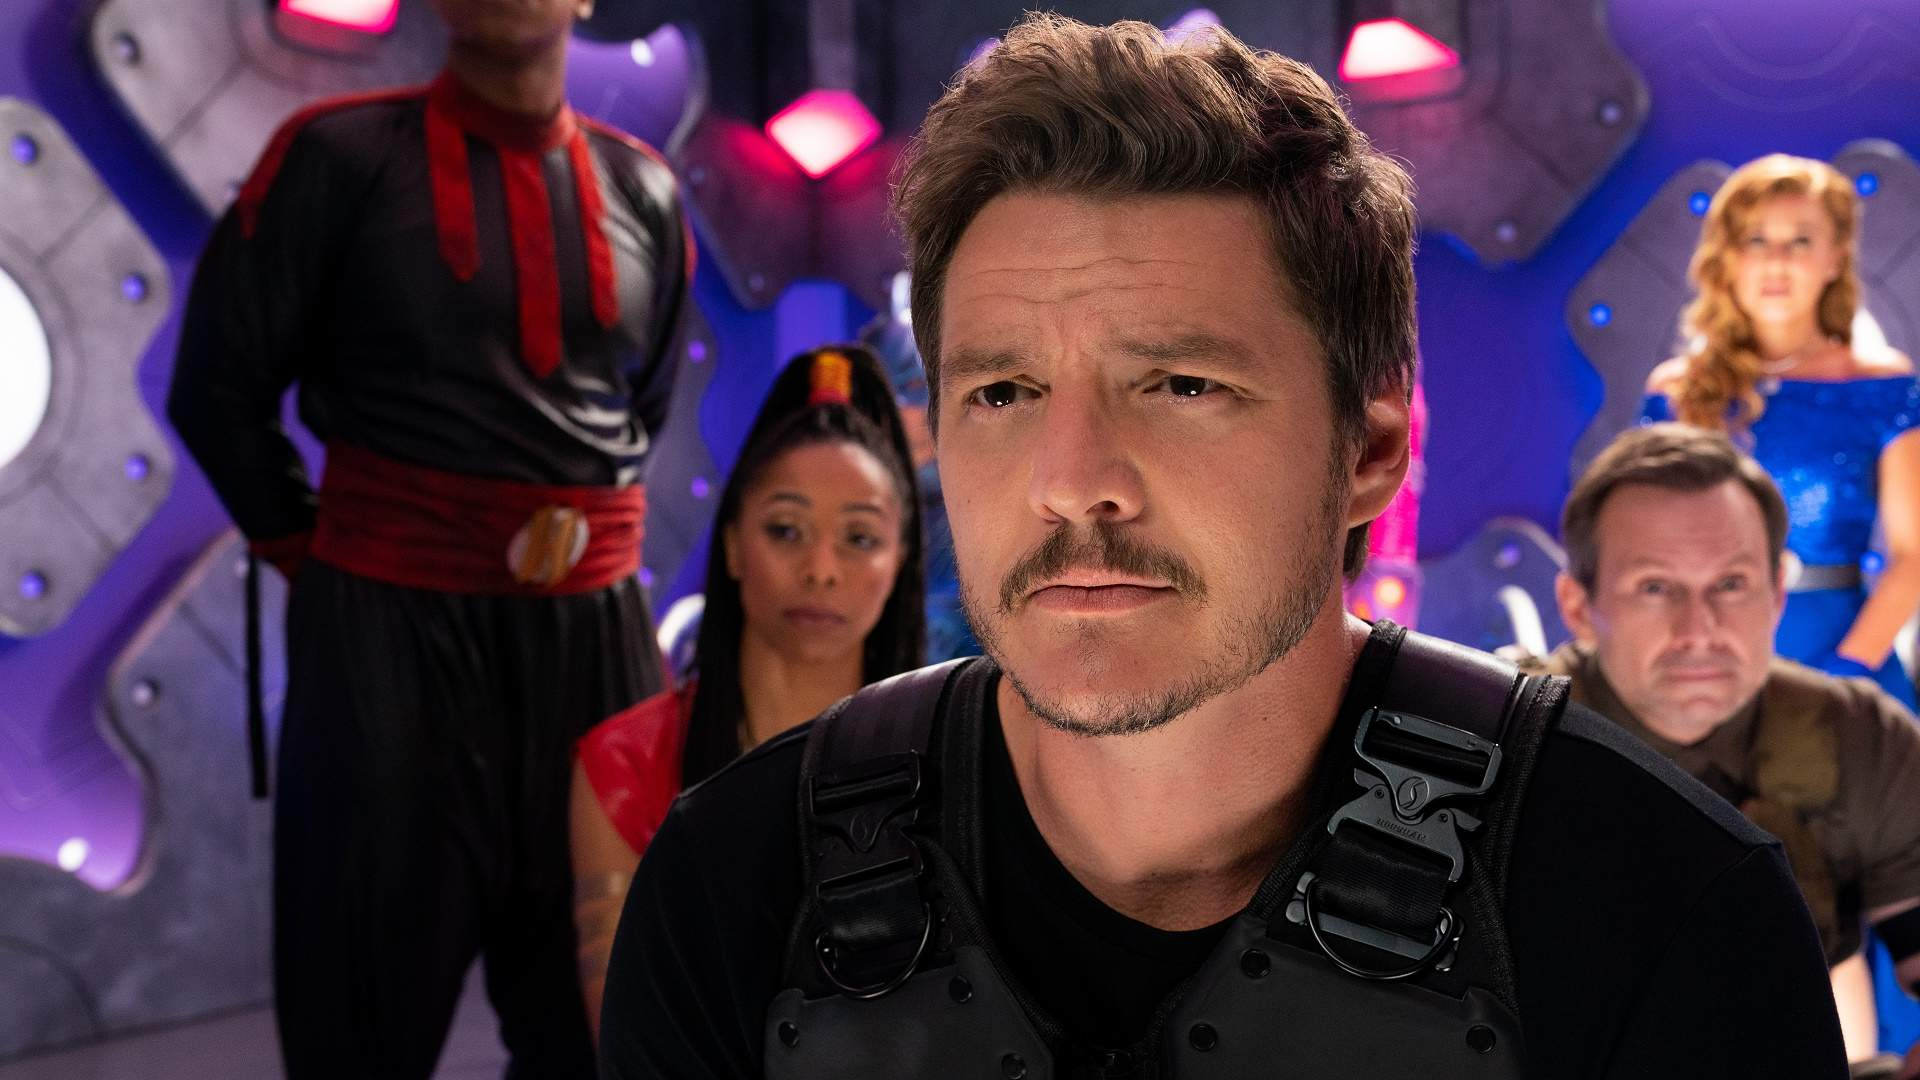 Pedro Pascal in We can be Heroes